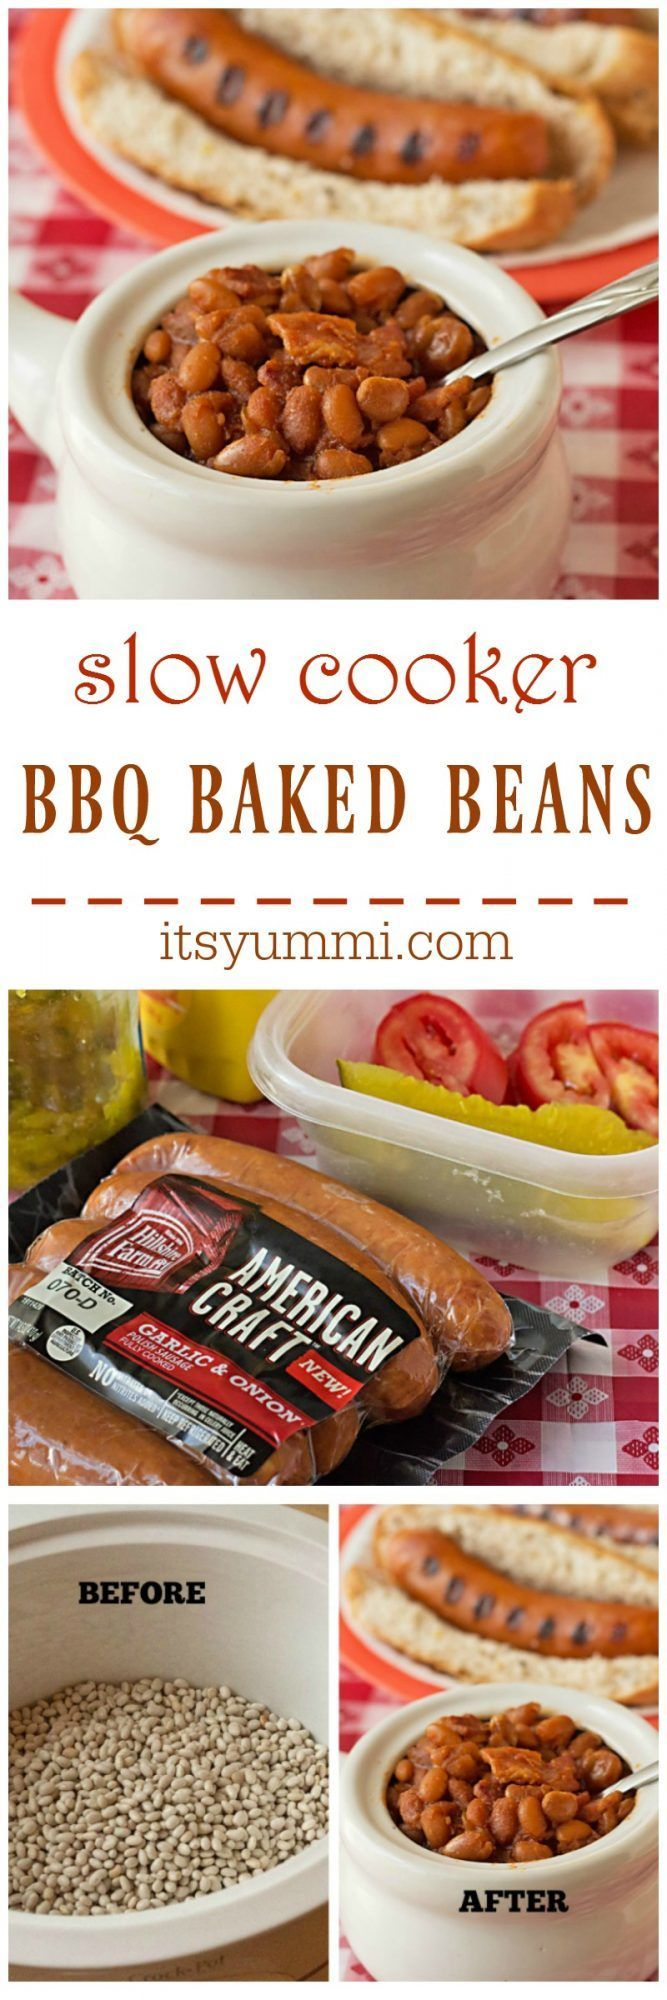 Slow Cooker BBQ Baked Beans Recipe ~ BBQ baked beans from scratch ...